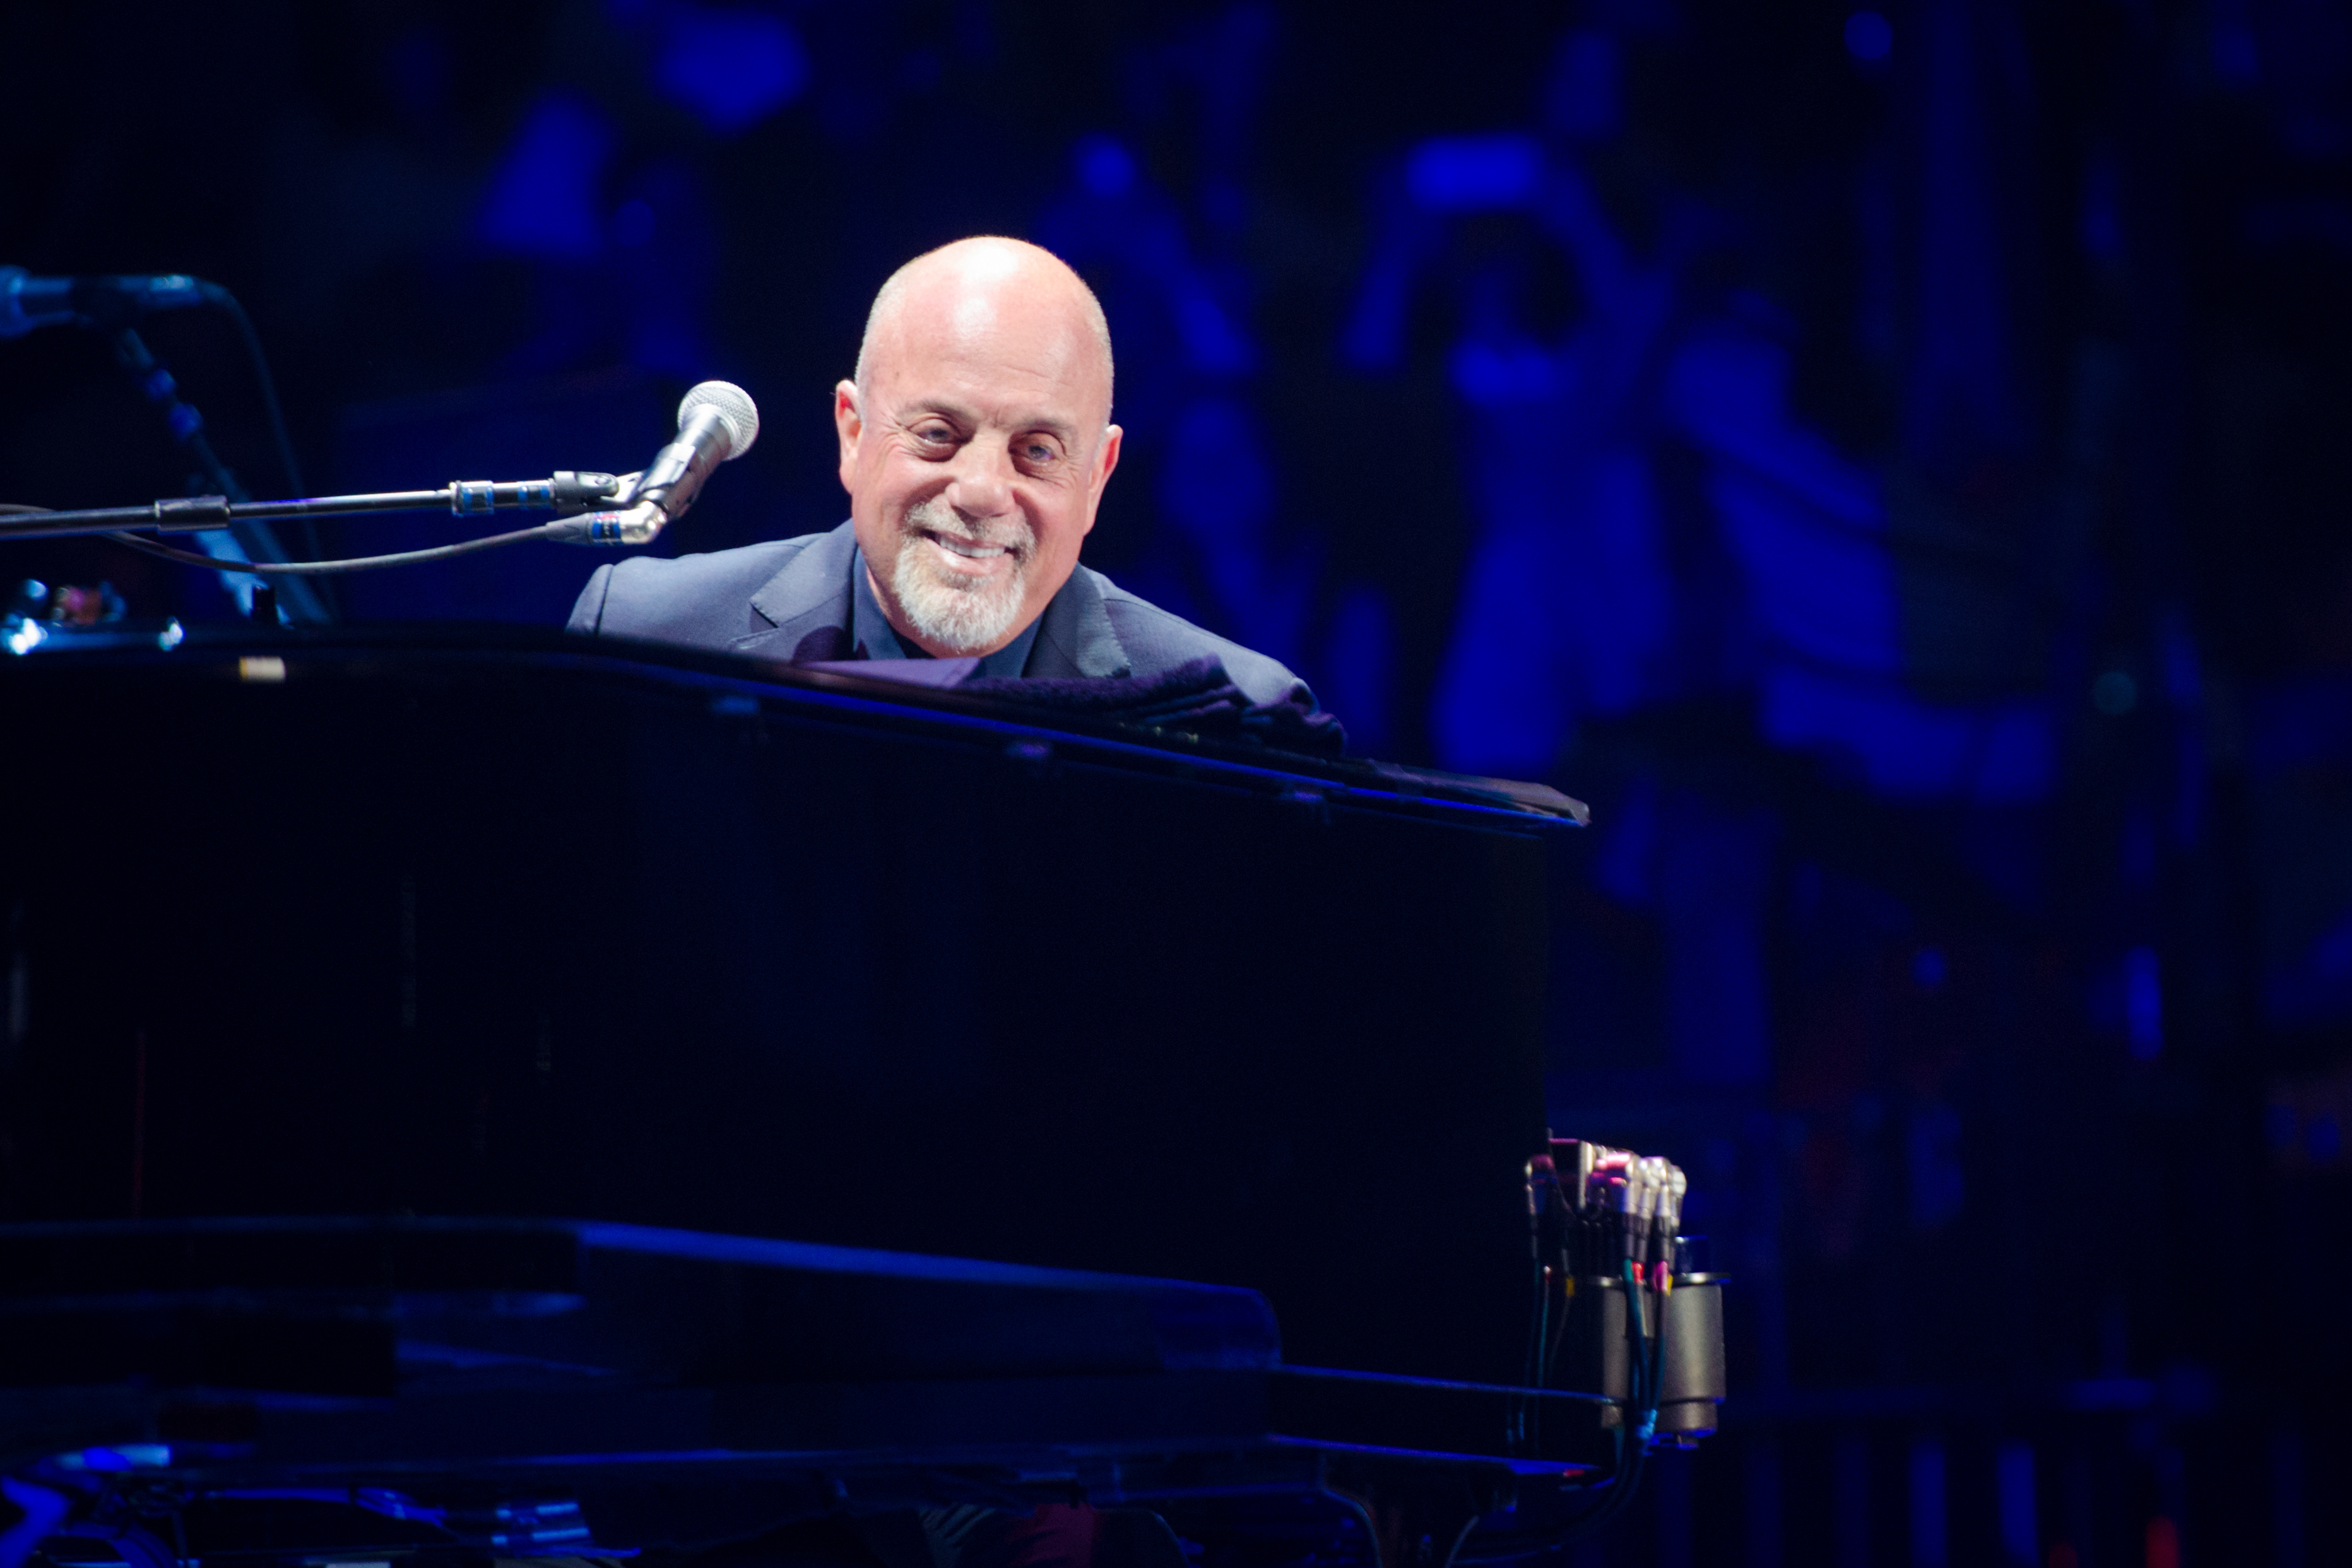 Billy Joel still has power to captivate audiences